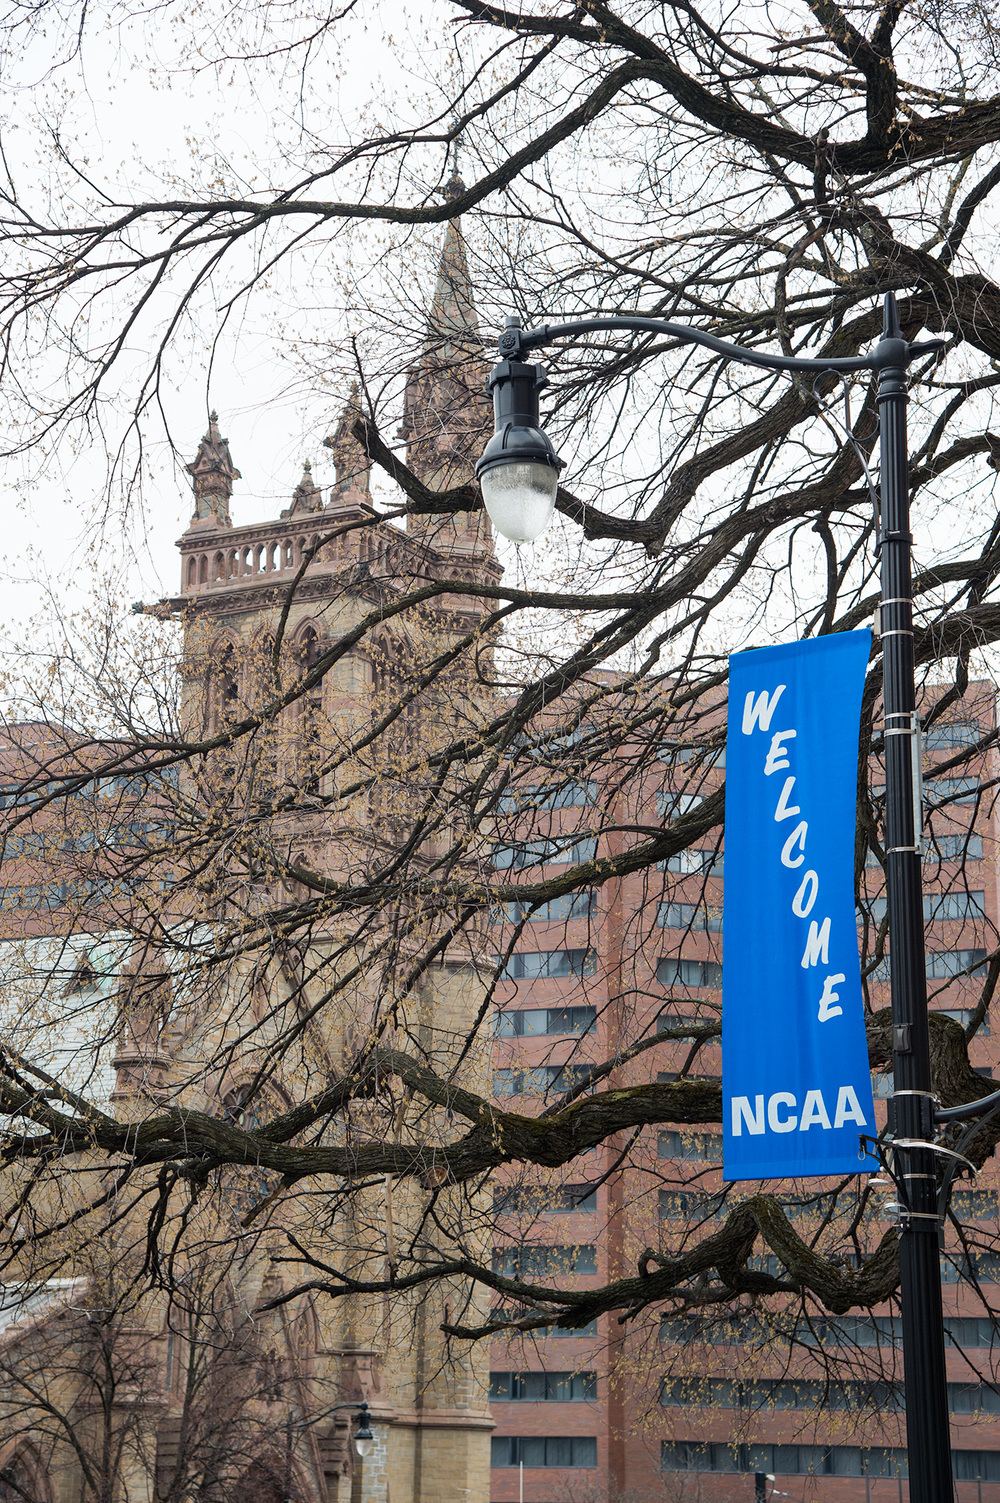 Banners on State Street welcoming The NCAA North Regional Hockey Playoff Tournament at the Times Union Center